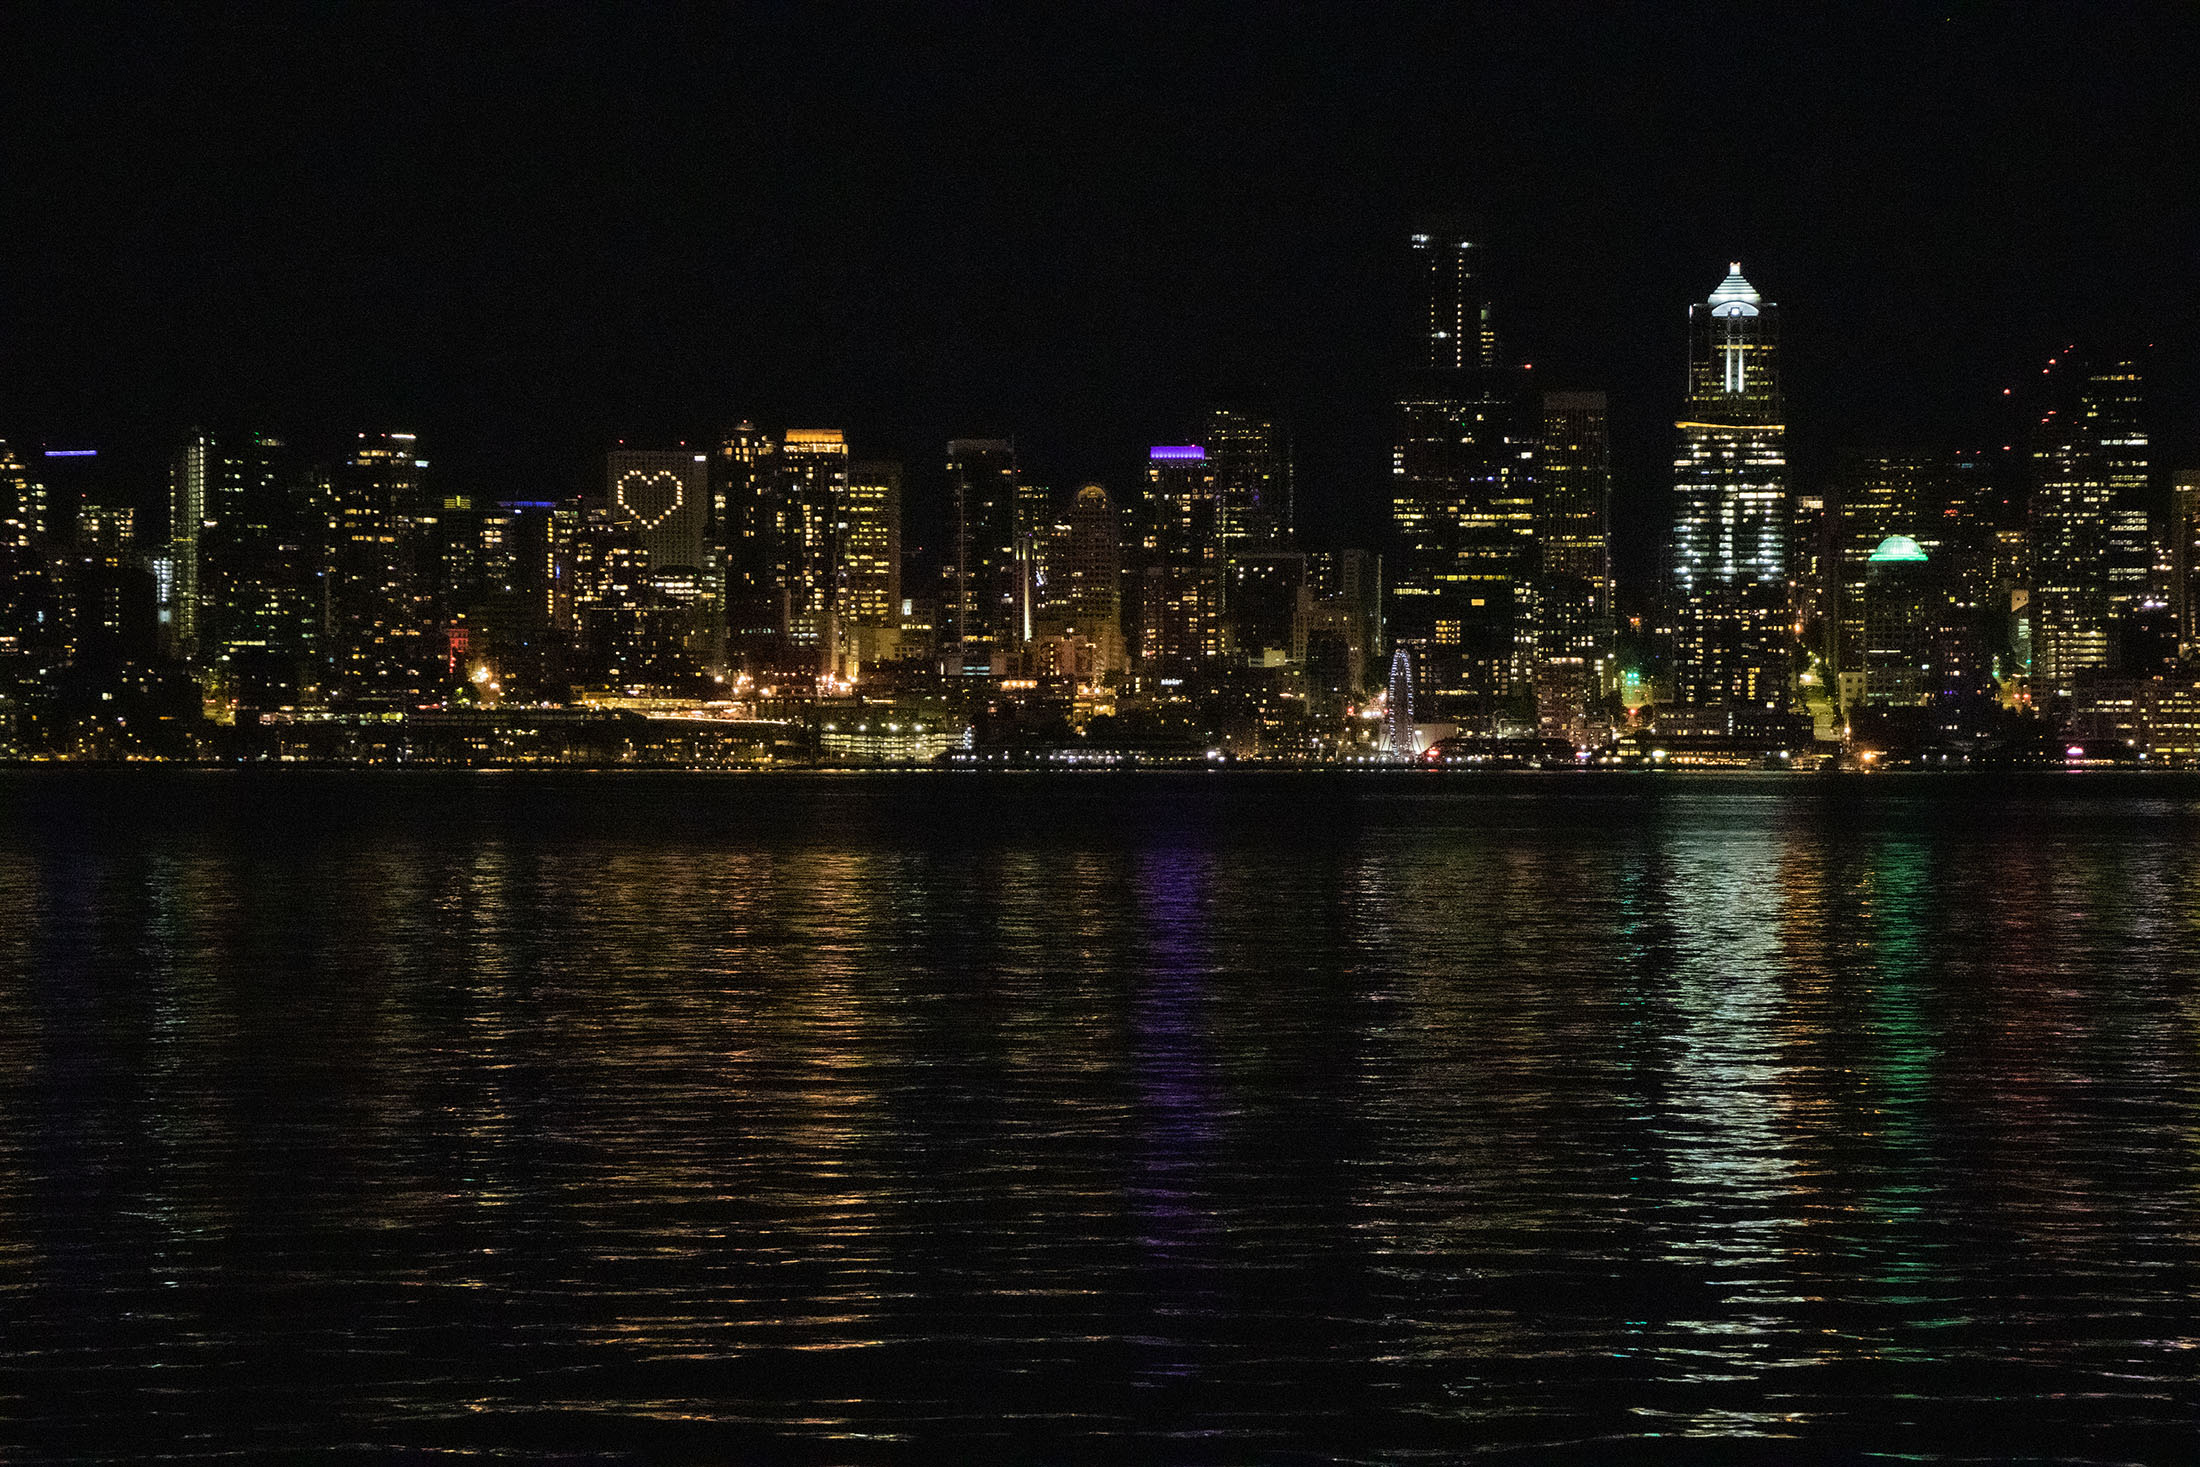 BOOM TOWN, The Seattle area has a population of about 4 million residents and is one of the fastest growing cities in America.